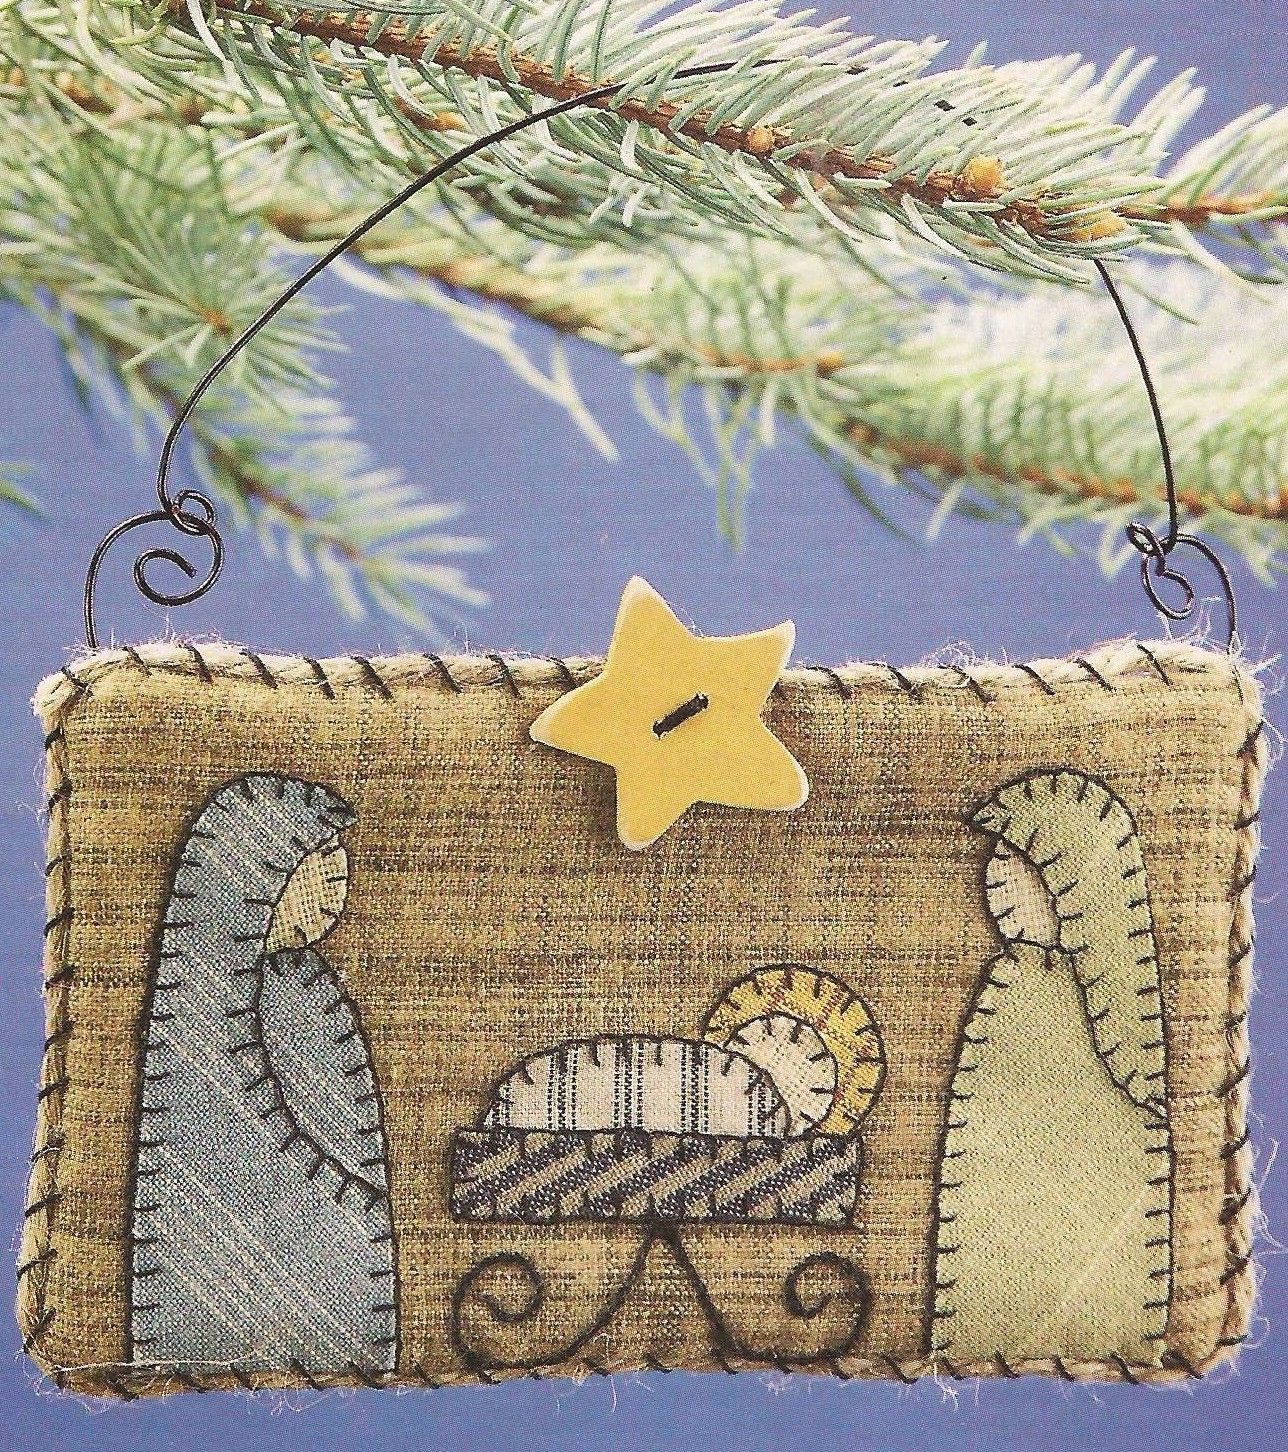 Nativity Quilt Ornament | Quilted ornaments, Ornament and ... : nativity quilts - Adamdwight.com